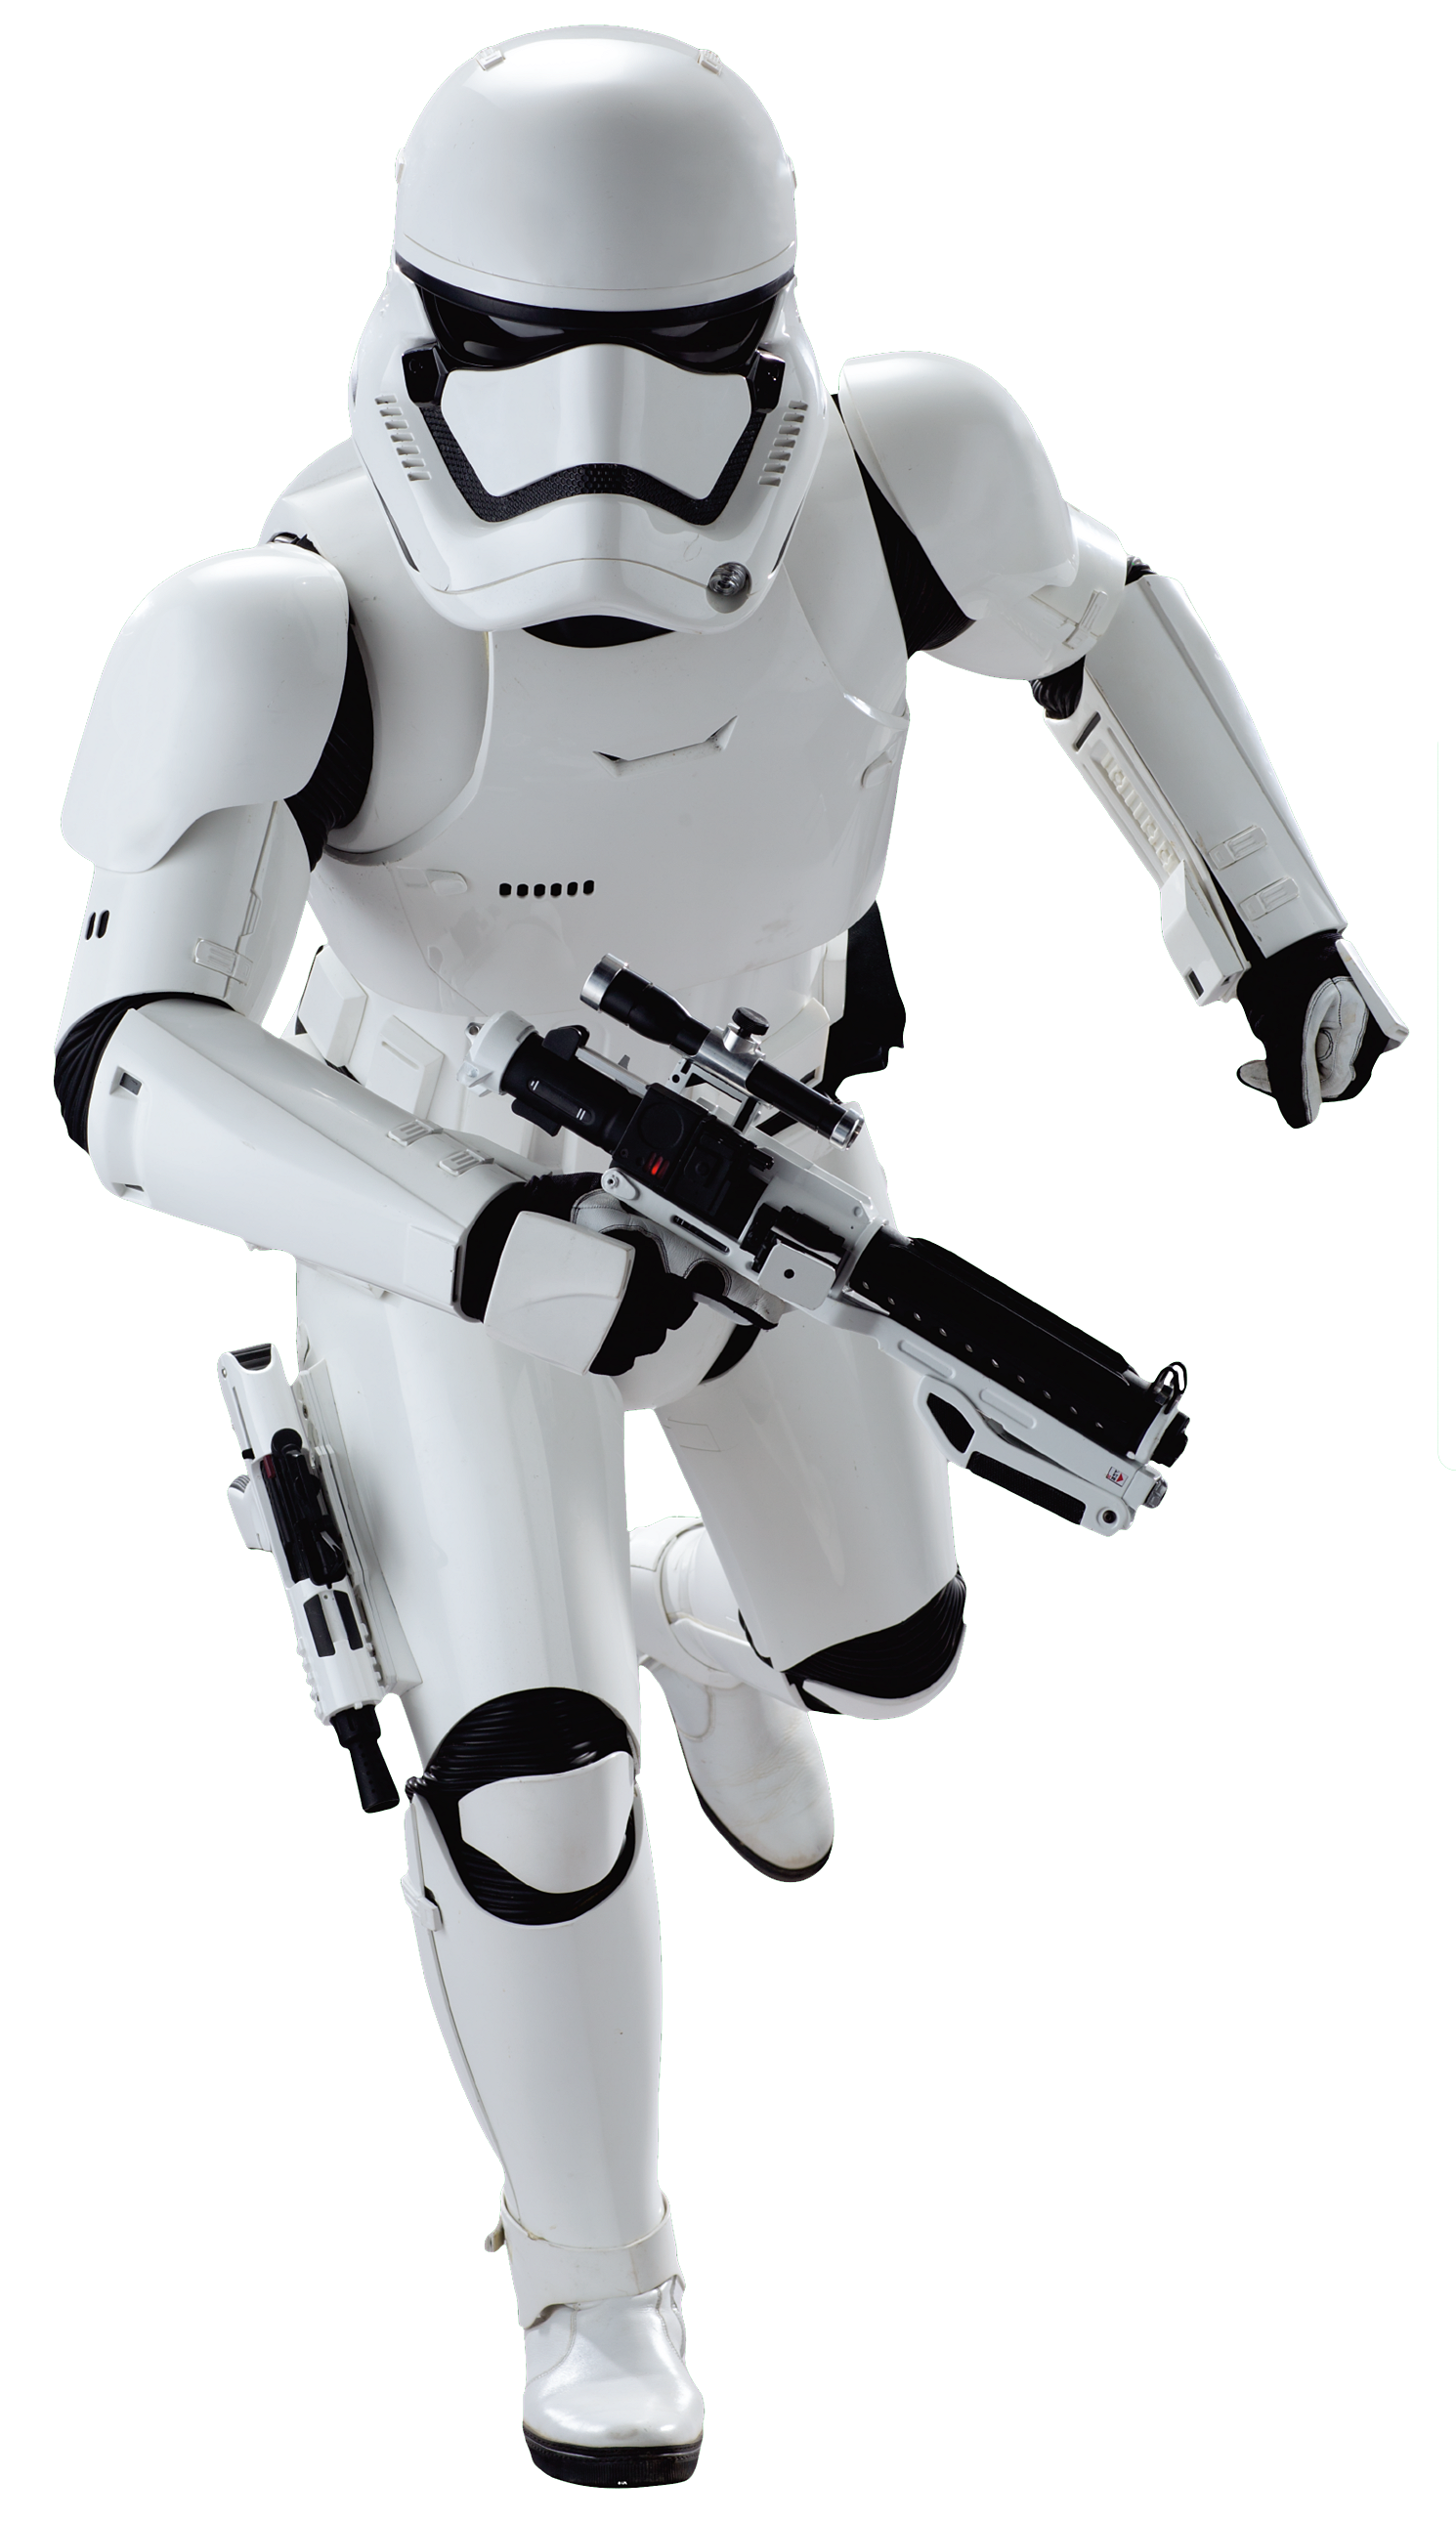 Stormtrooper png image purepng. Darth vader clipart doth graphic black and white